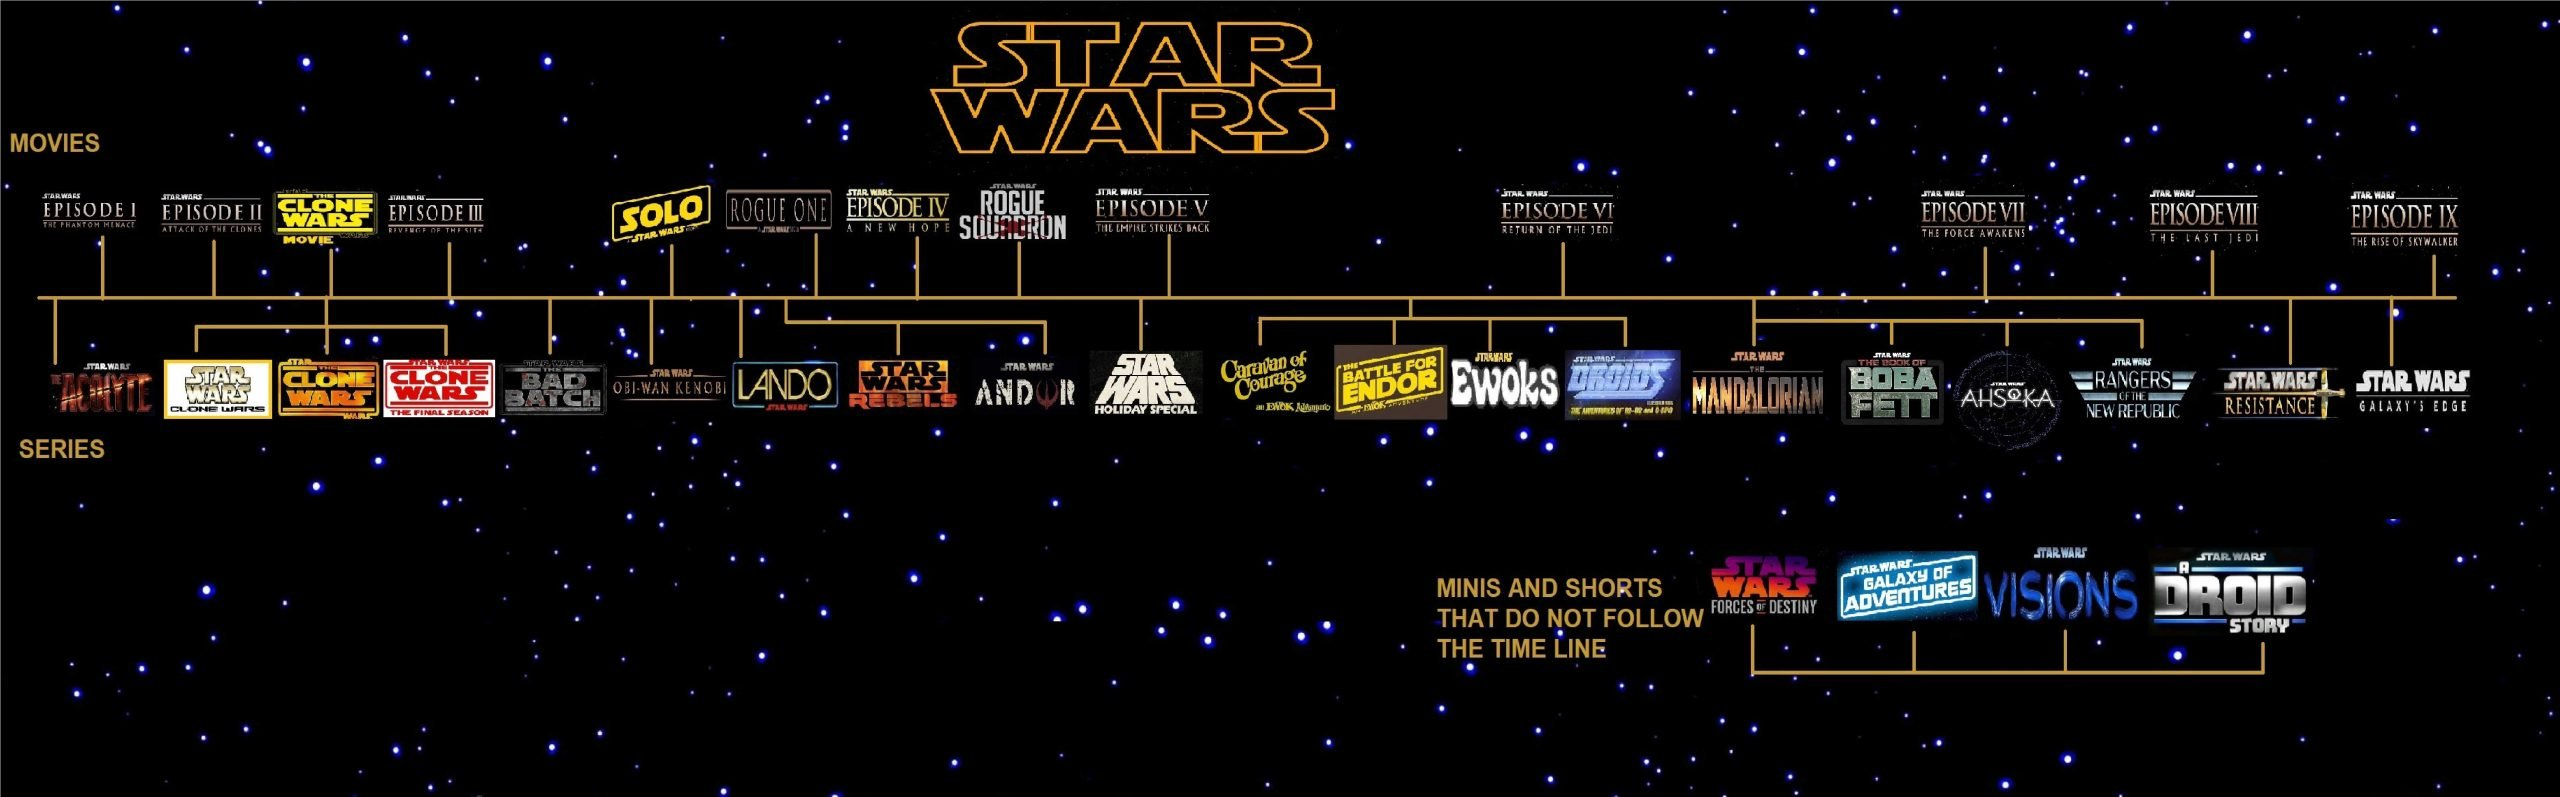 All New Star Wars Timeline With New Movies And Tv Shows Included